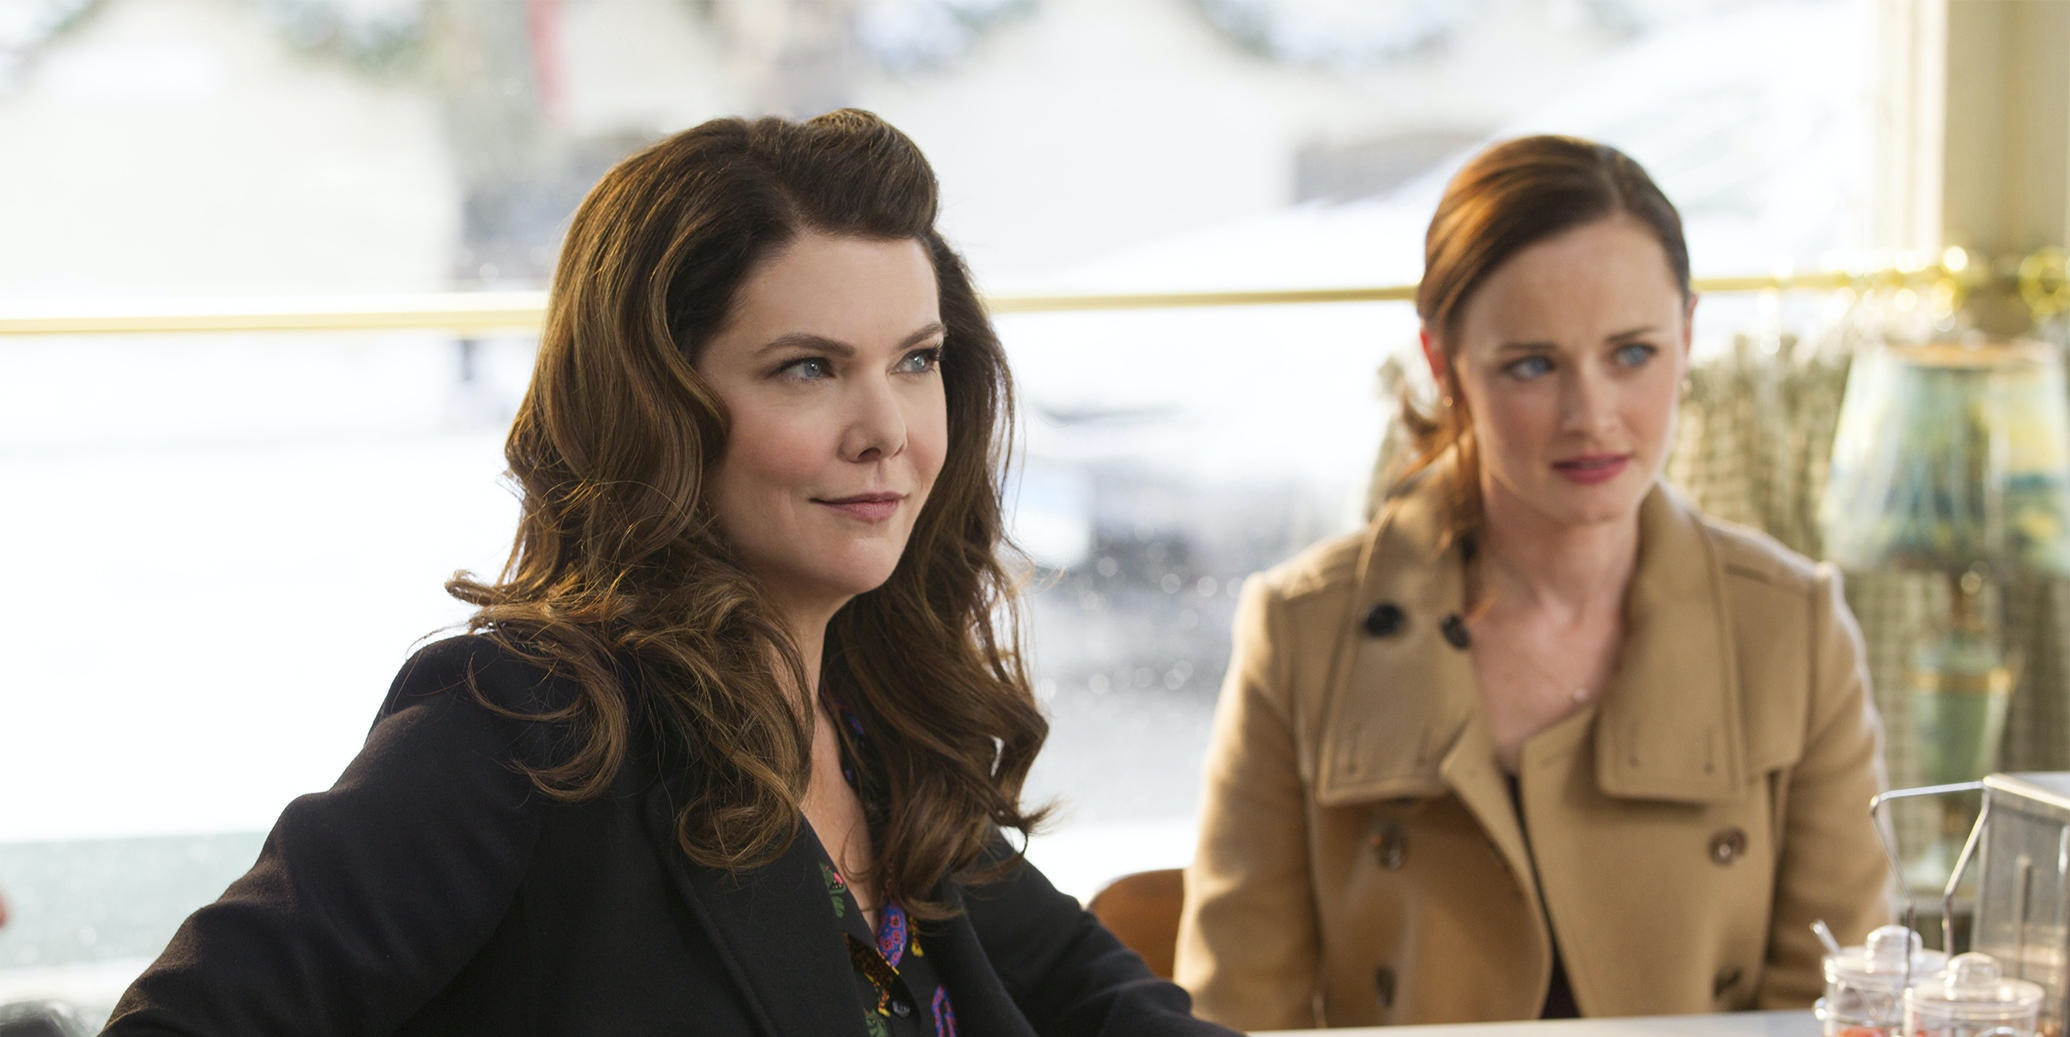 Lorelai and Rory keep forgetting the name of Rory's boyfriend in 'A Year in the Life.'